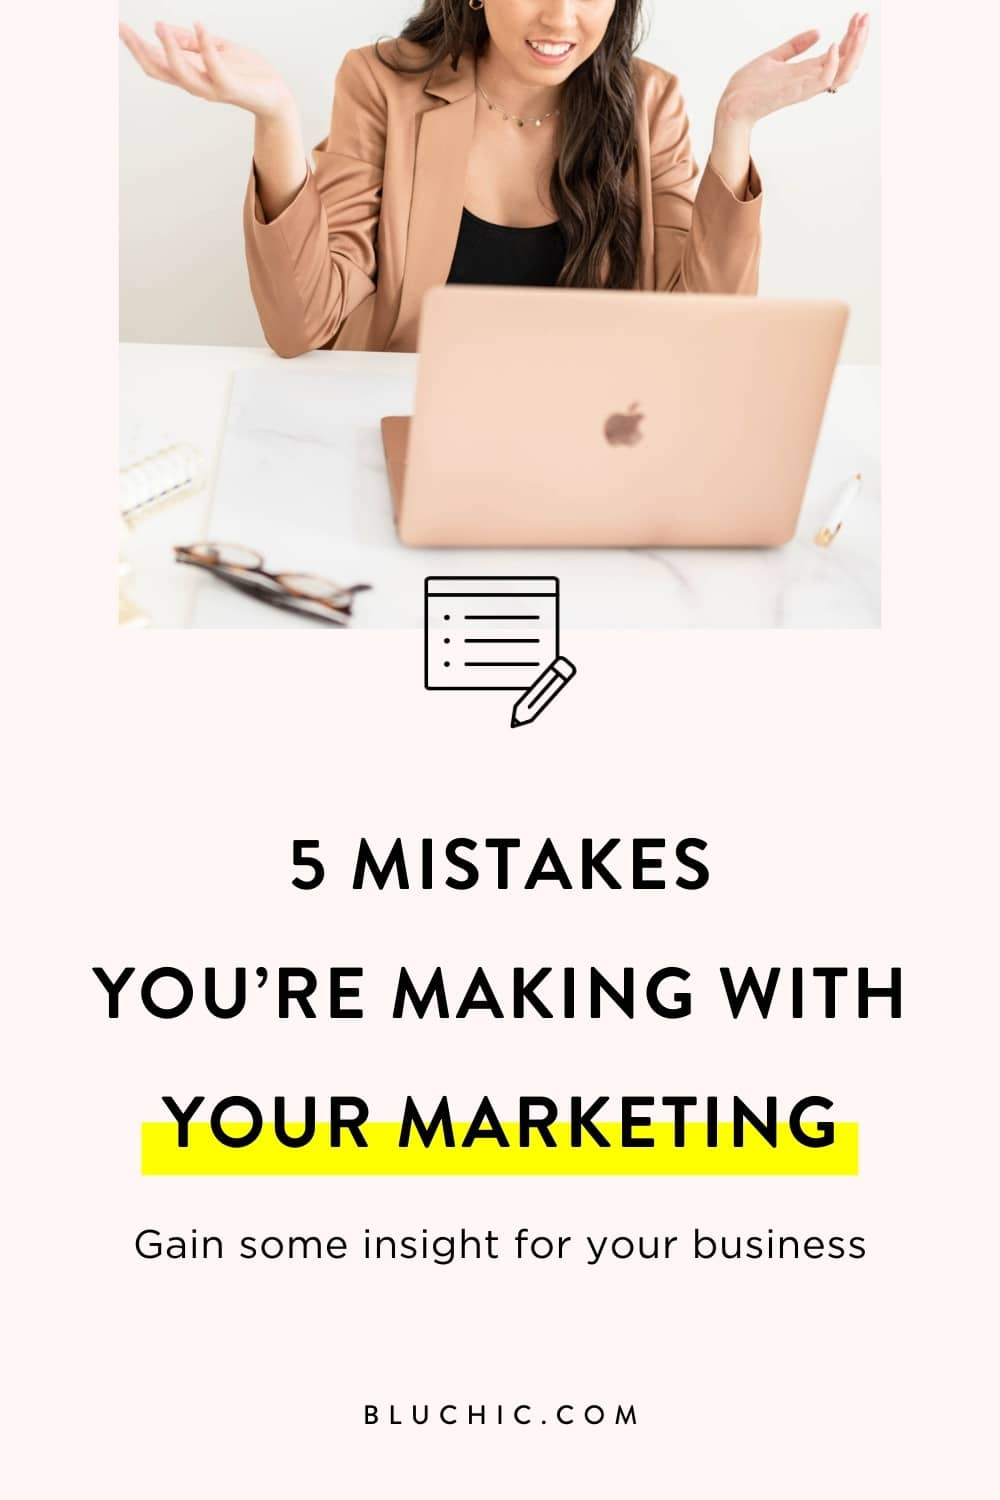 5 Mistakes you're making with your marketing as a business owner | We share 5 marketing mistakes business owners make today with their business, so you can gain some insight and not make these mistakes for your own business.